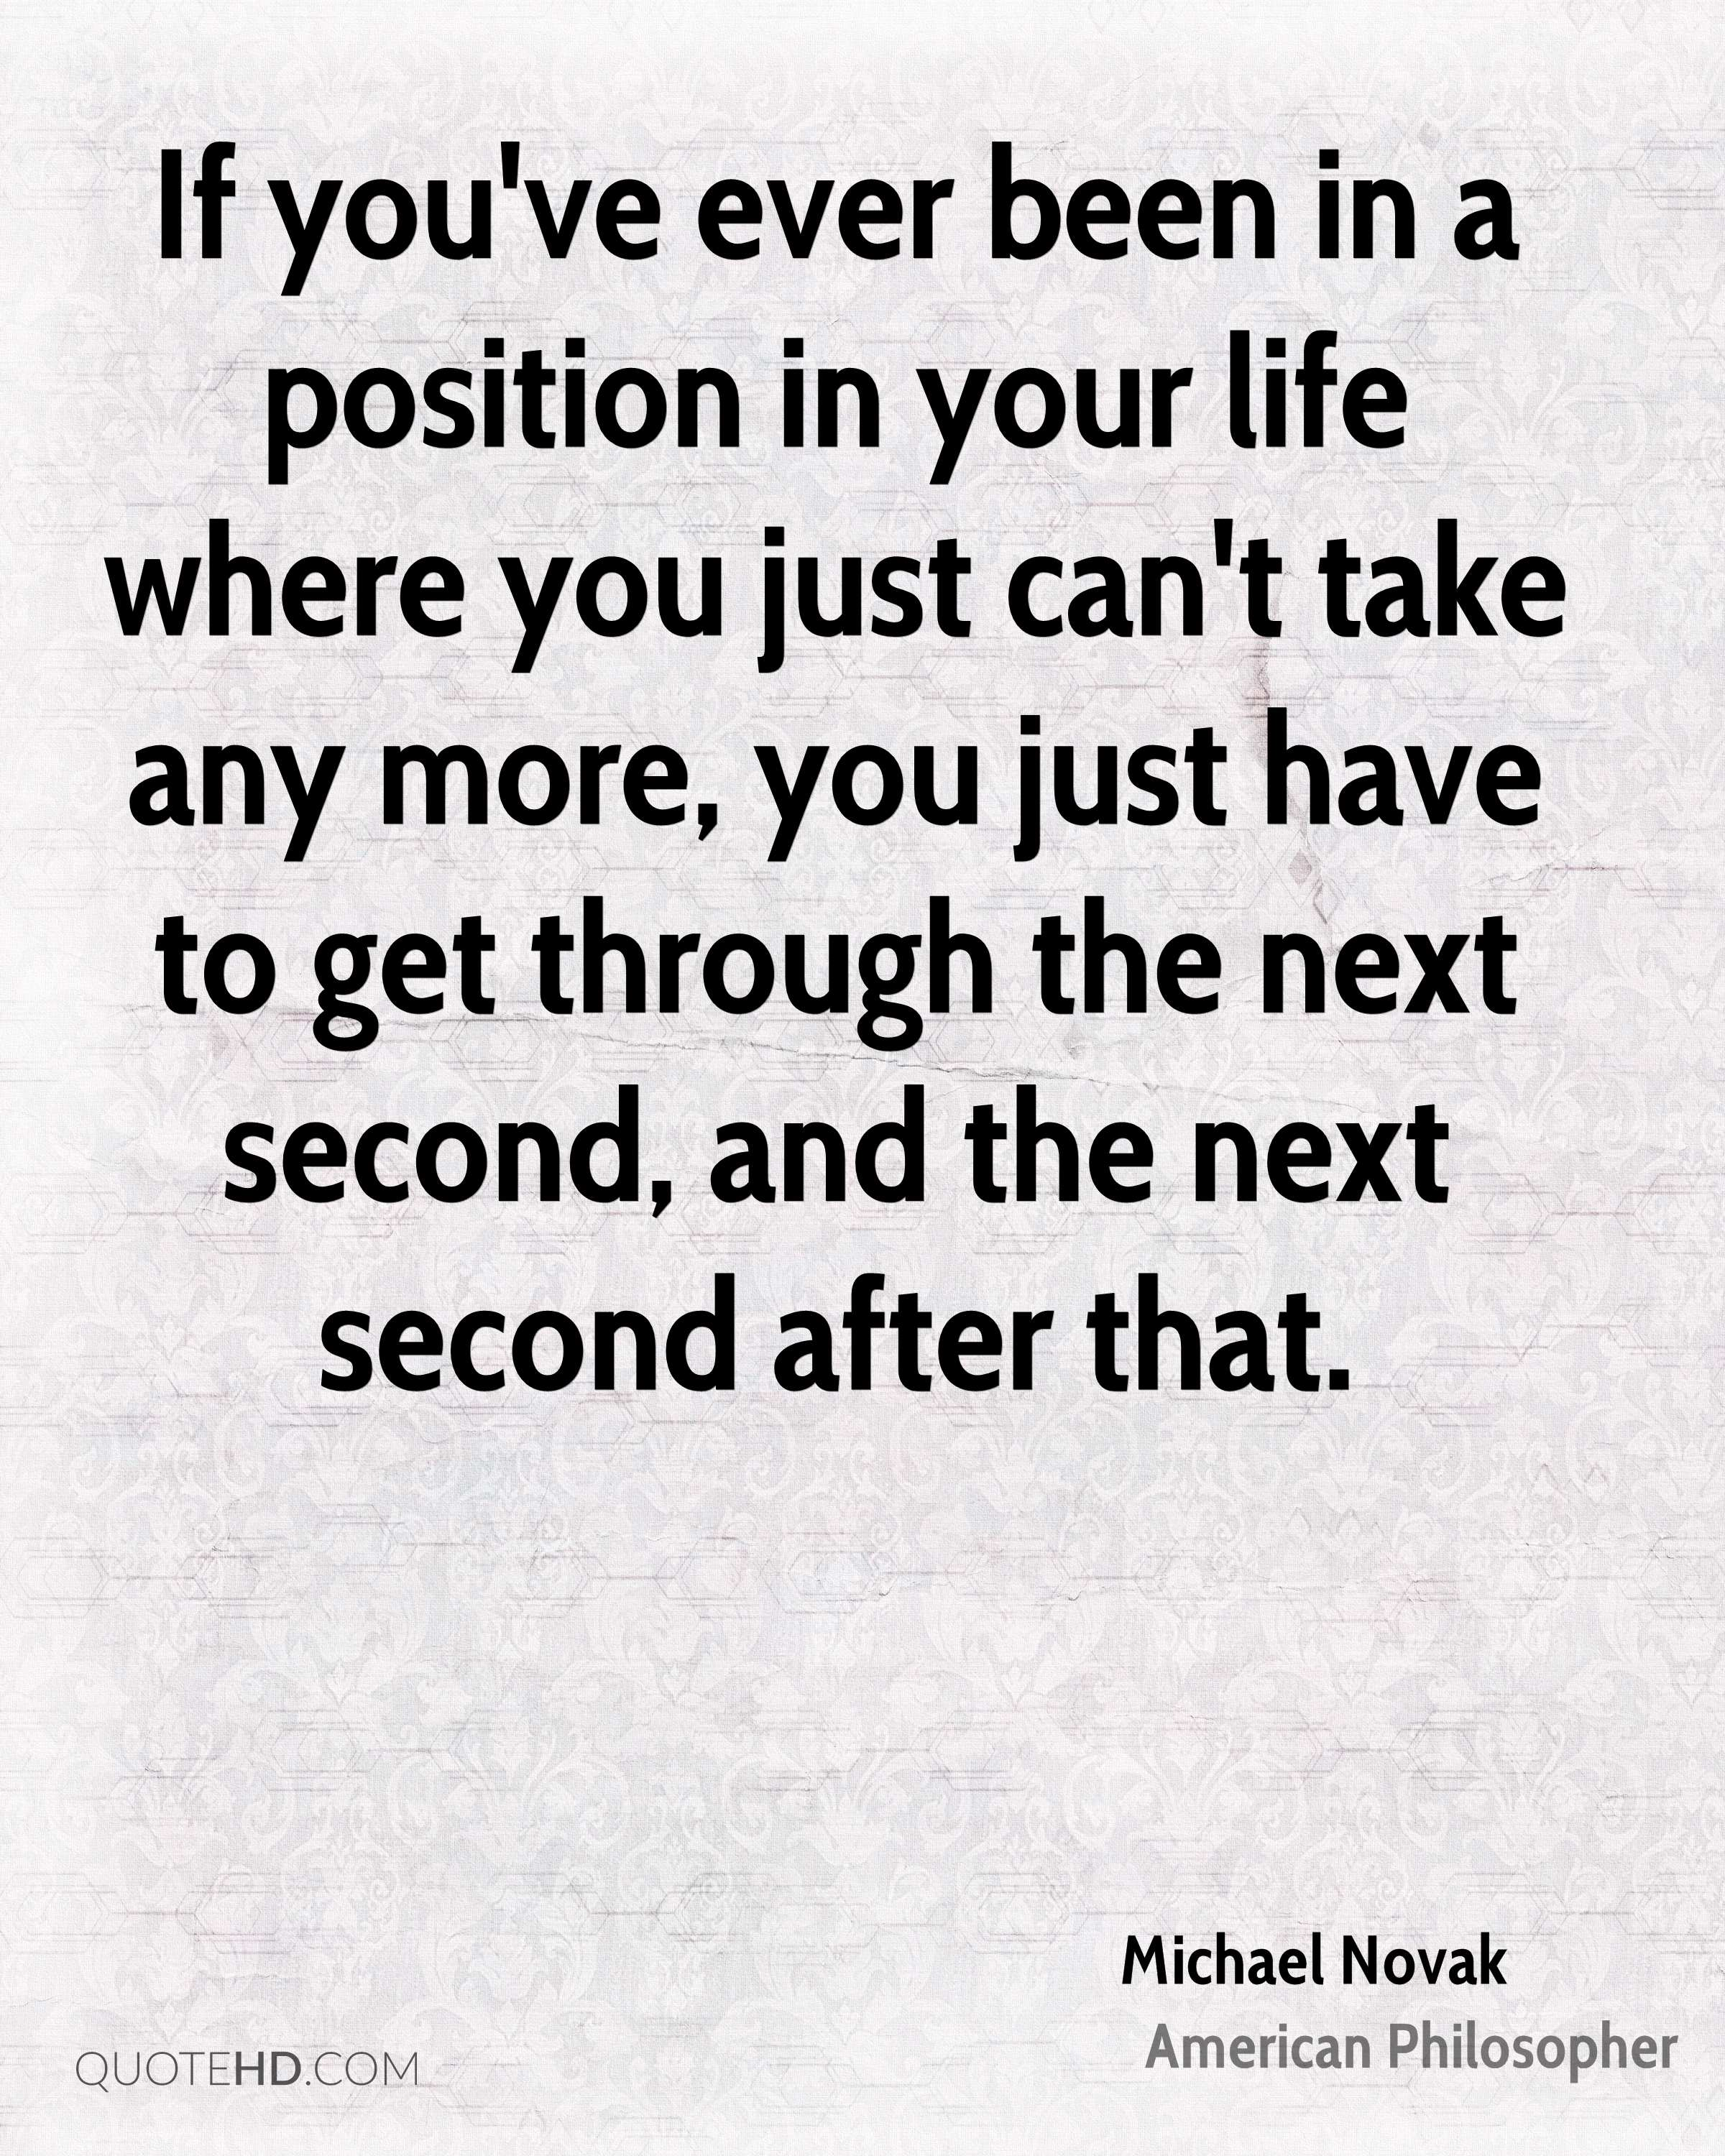 If you've ever been in a position in your life where you just can't take any more, you just have to get through the next second, and the next second after that.